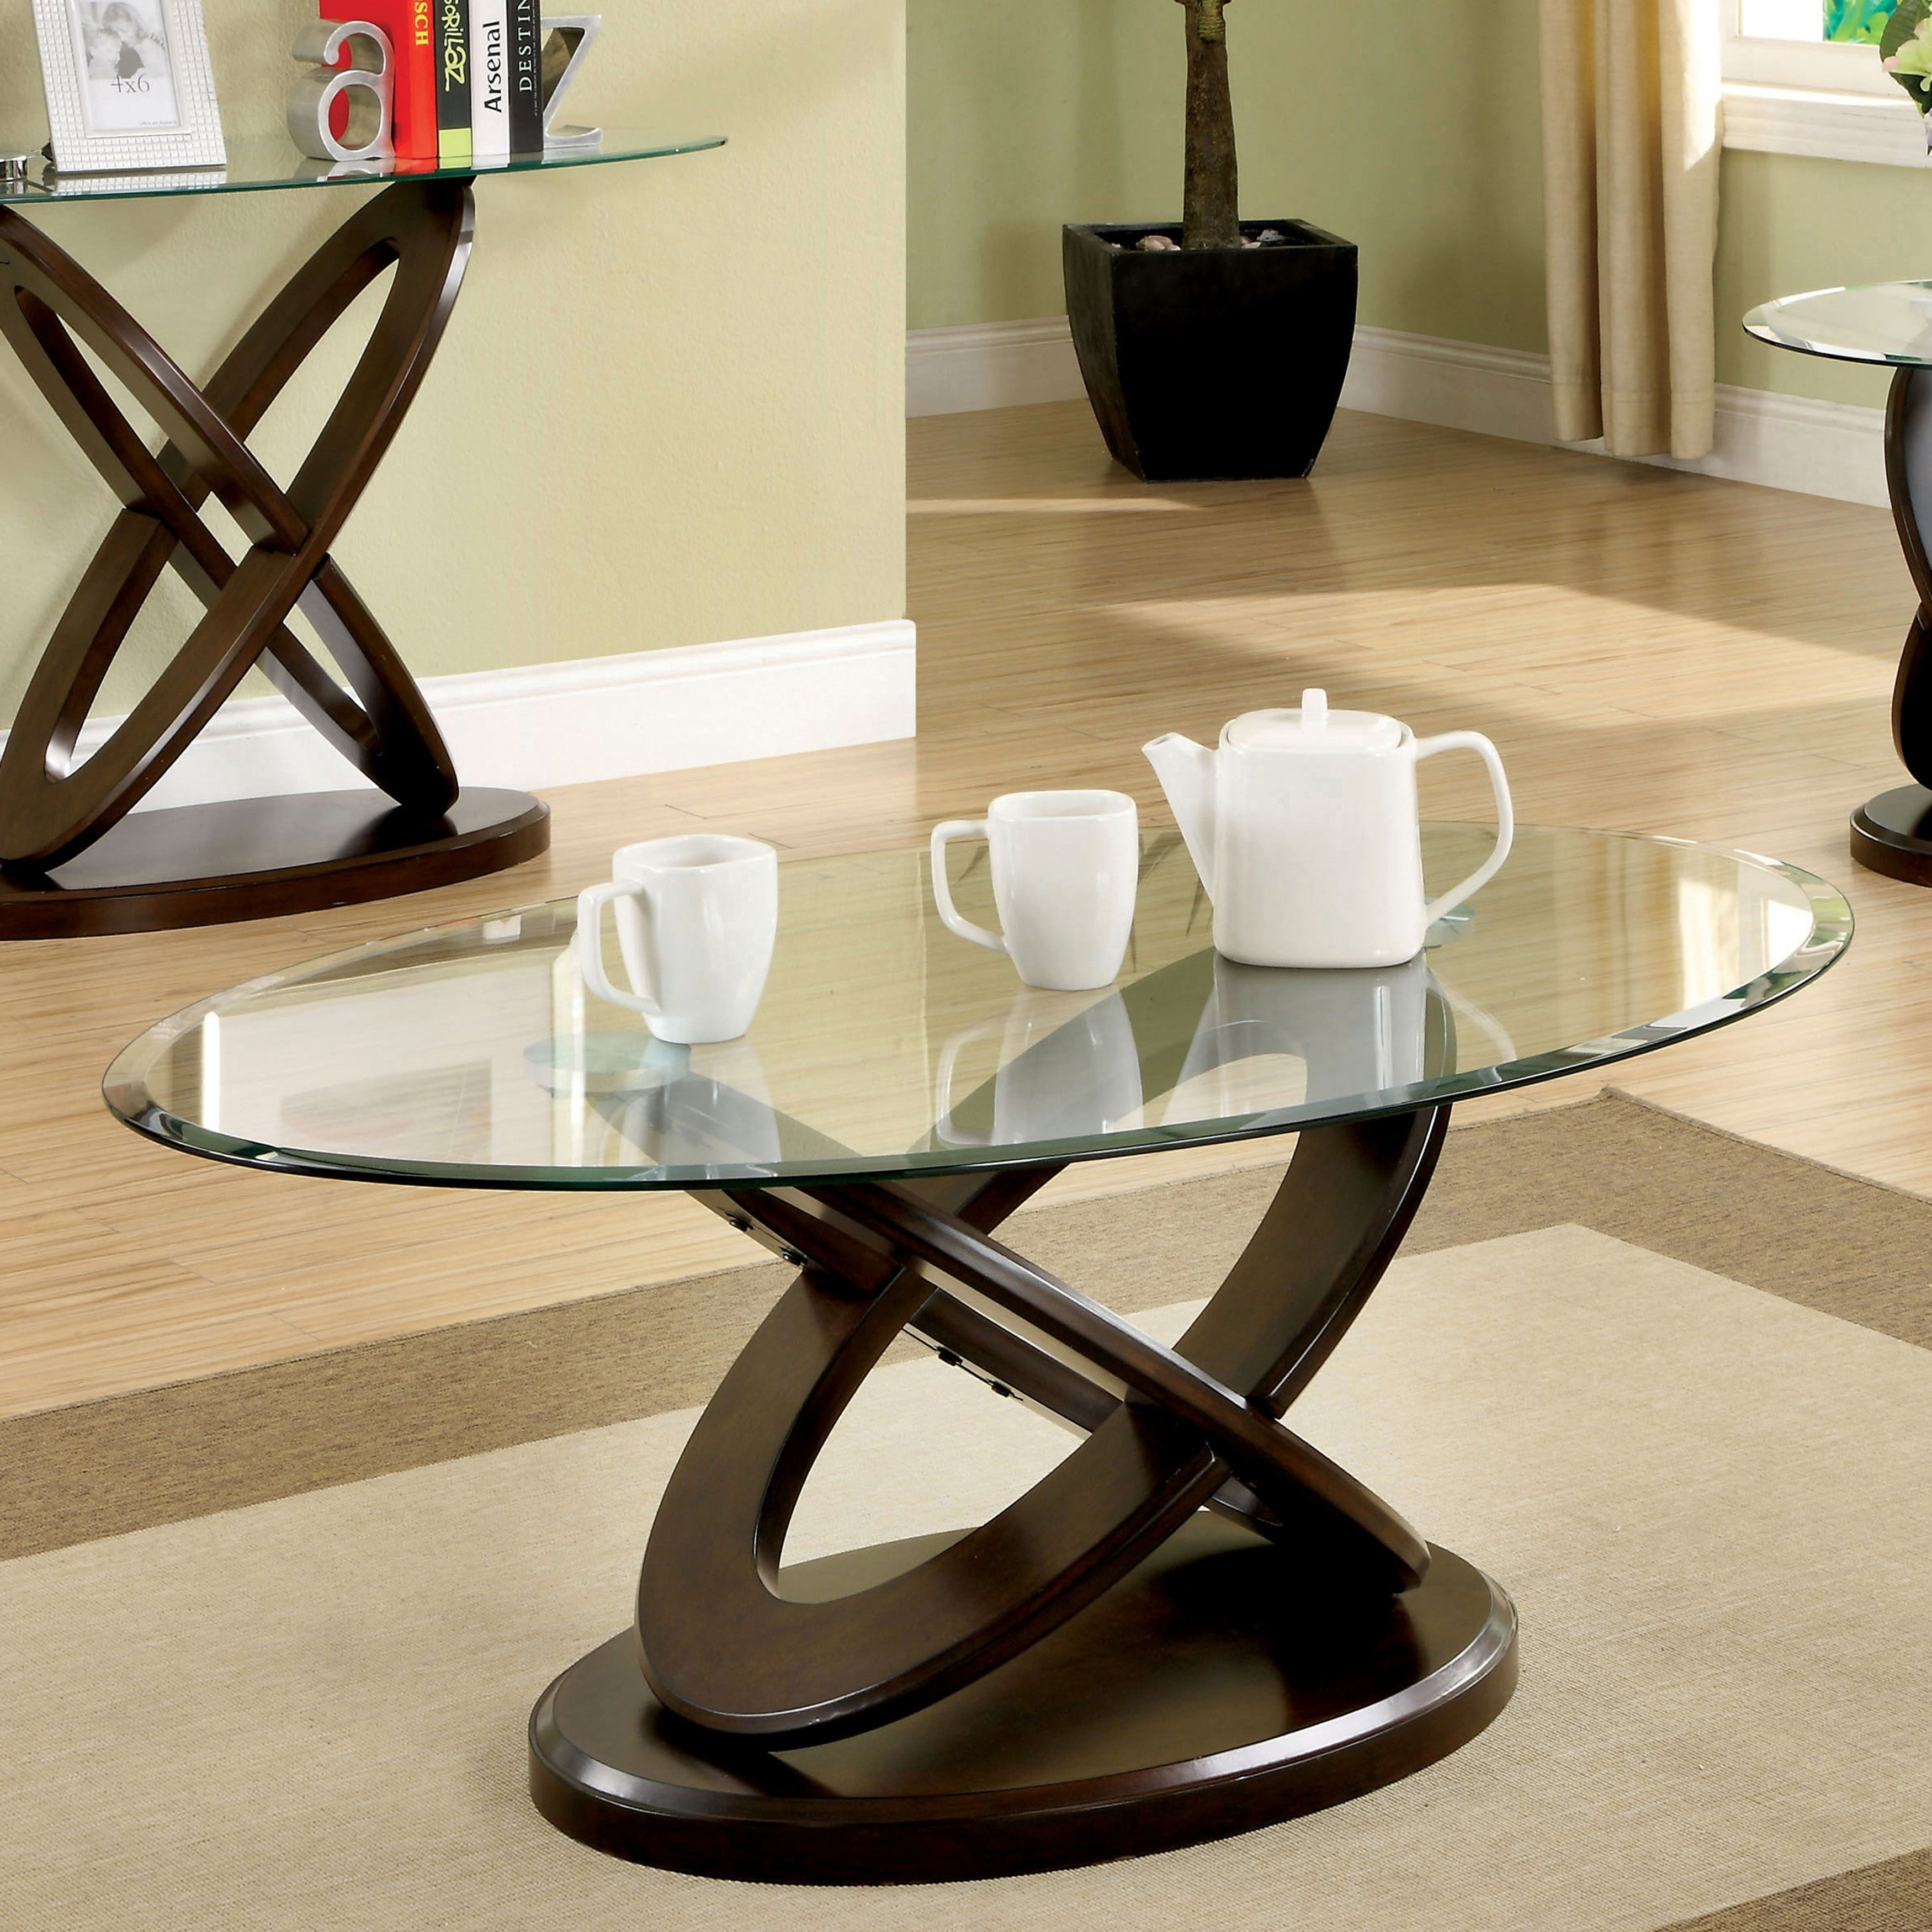 Shop Furniture Of America Evalline Oval Glass Top Coffee Table On